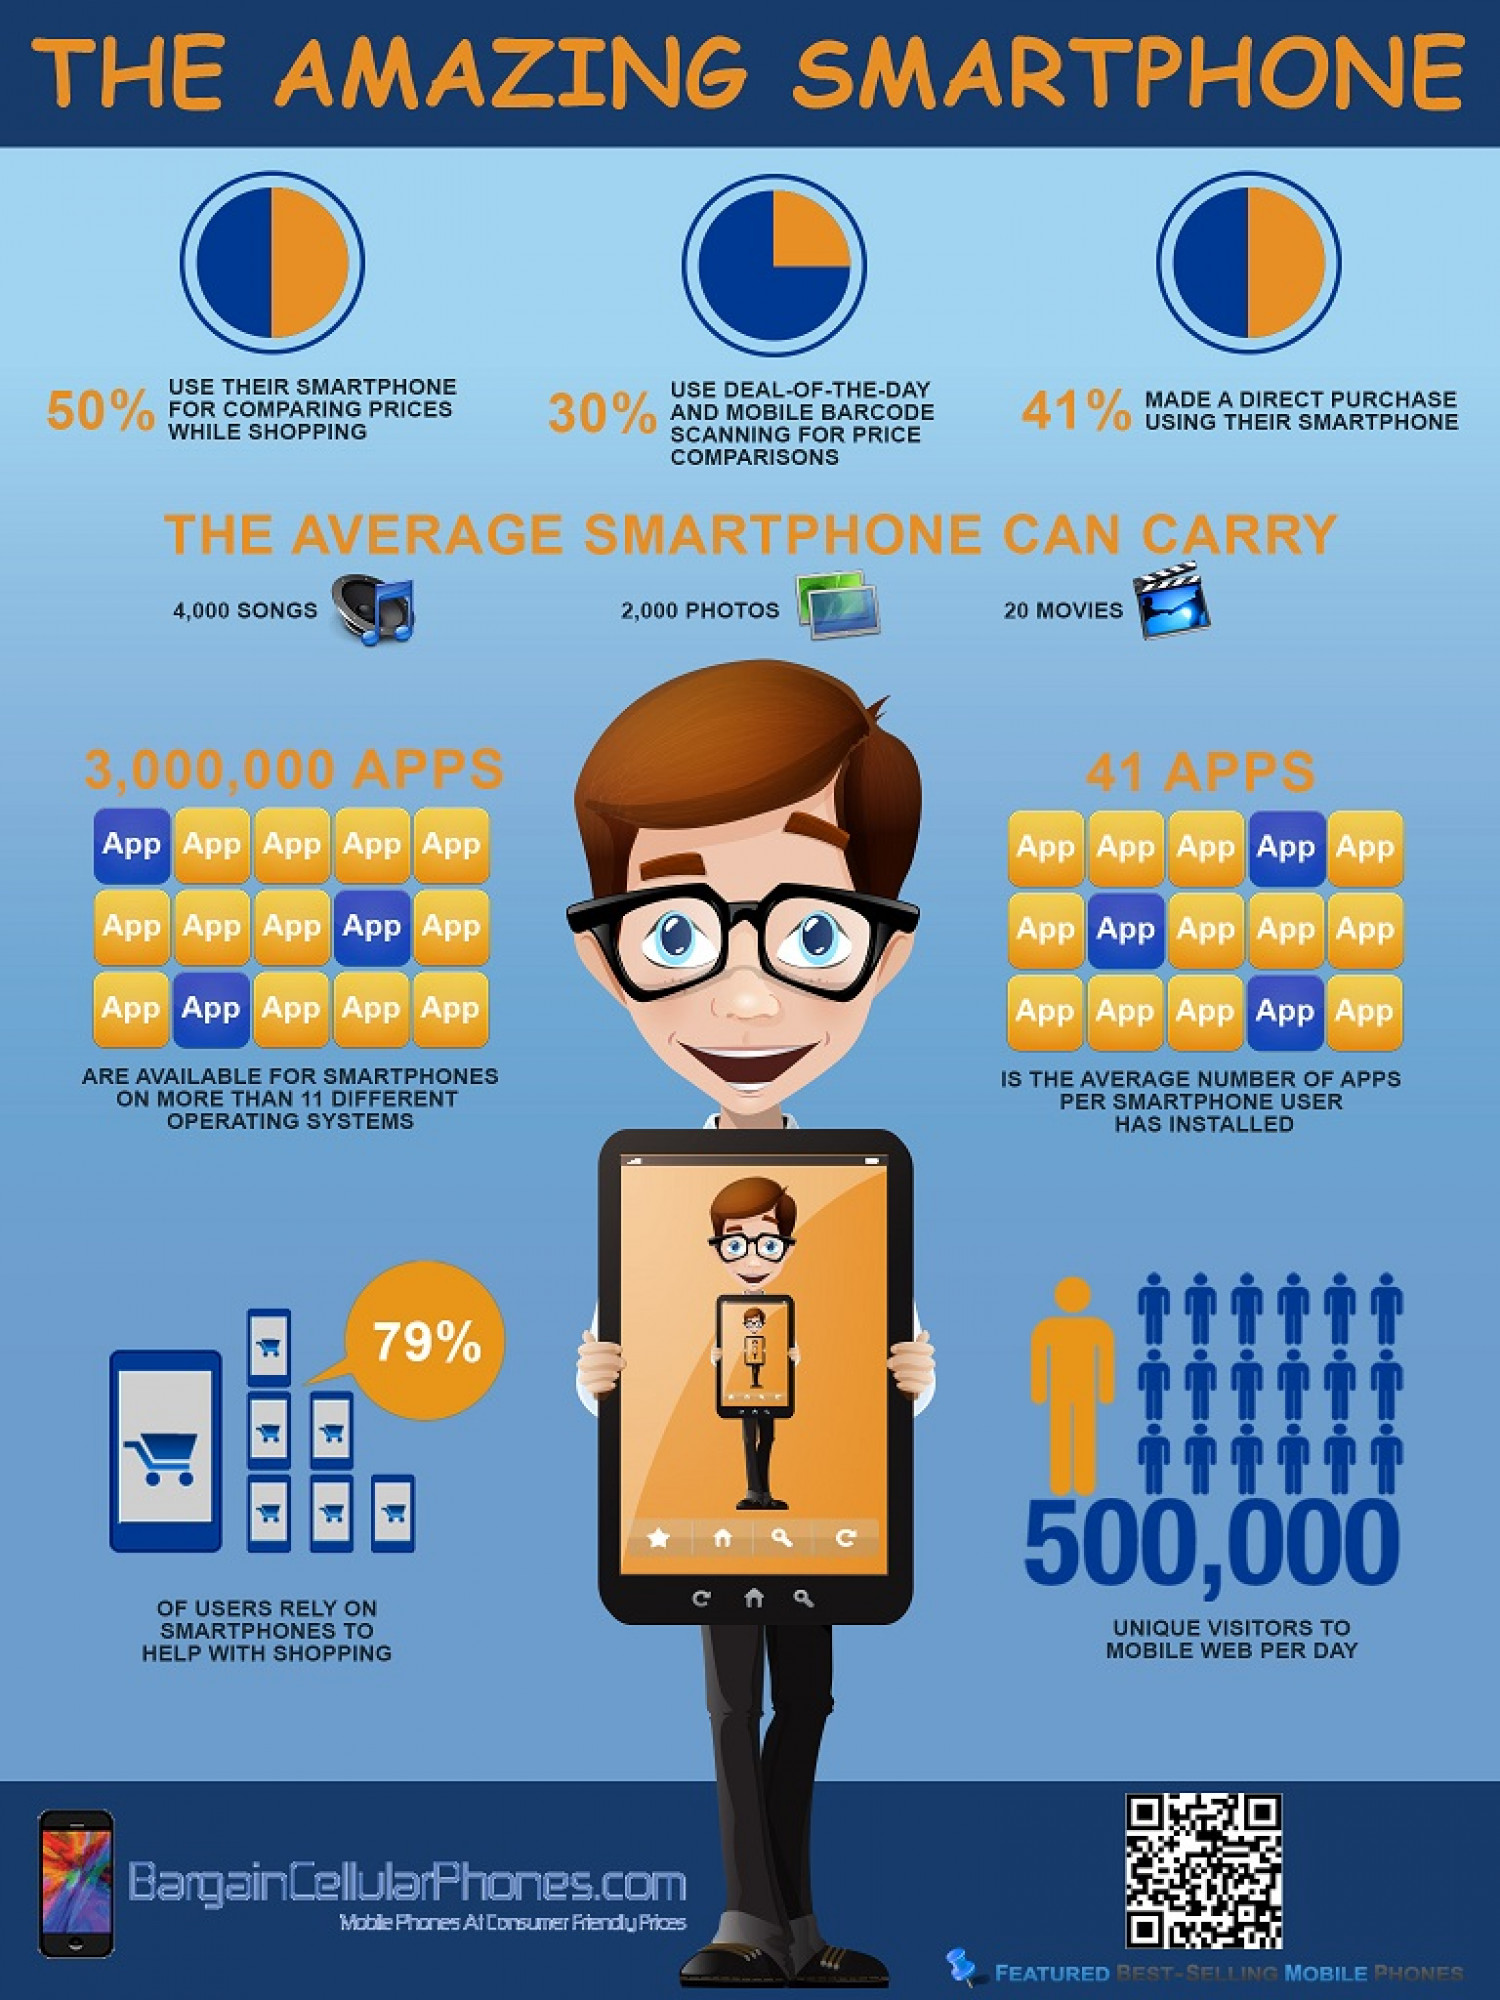 The Amazing Smartphone Infographic